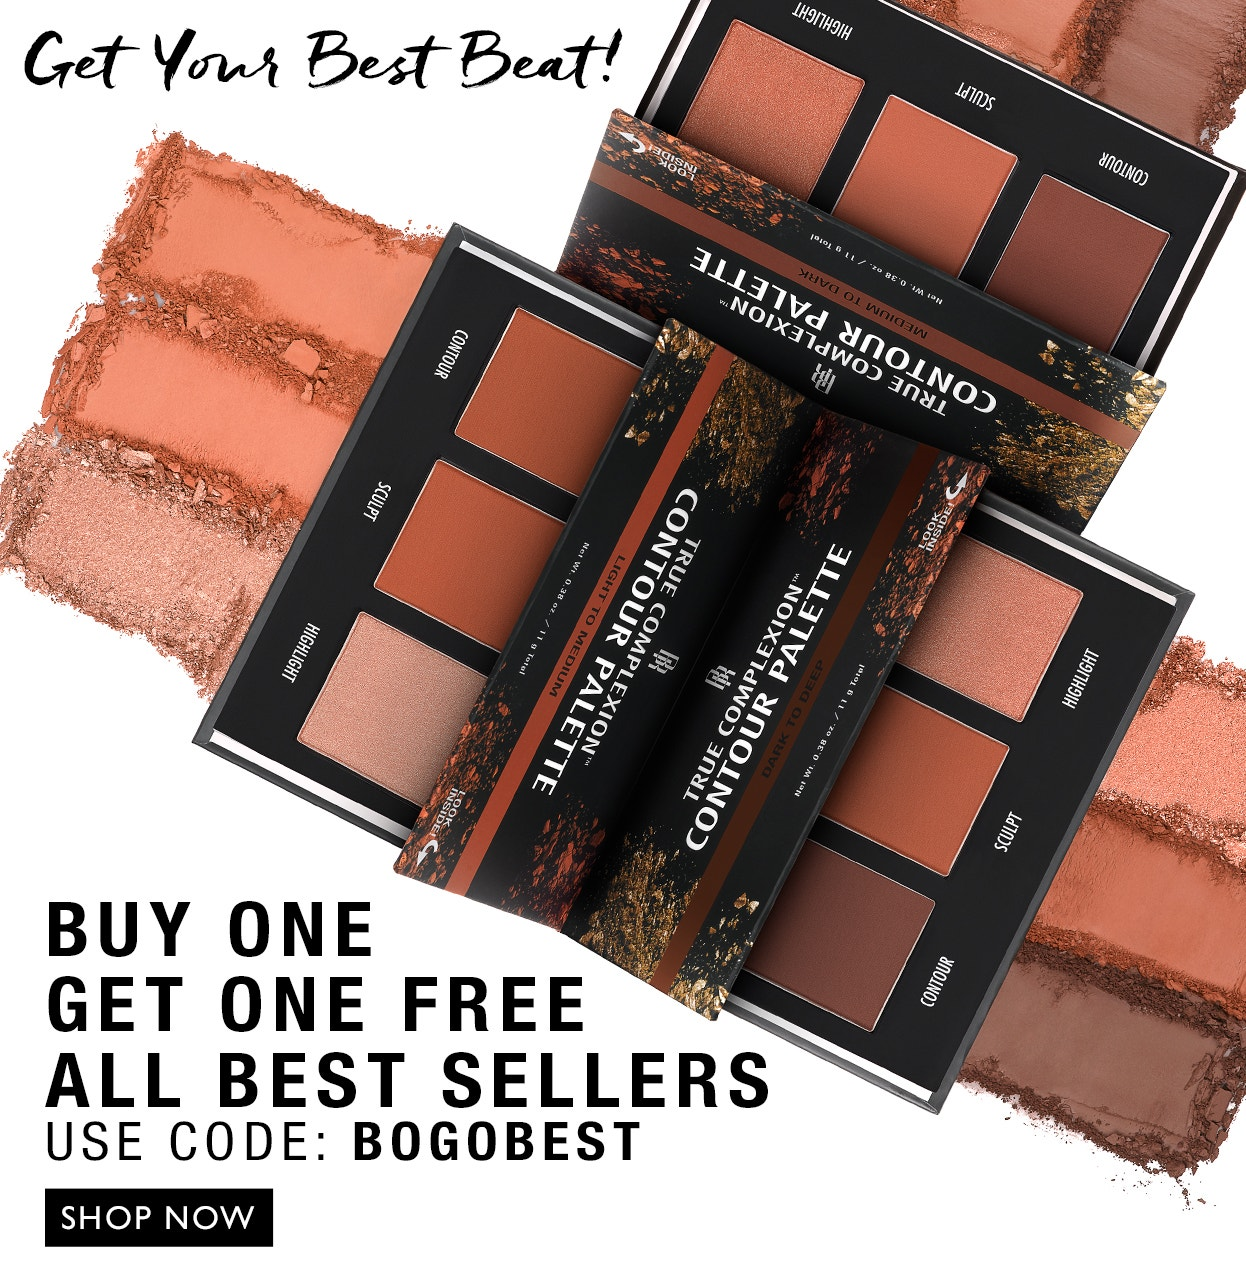 Get Your Best Beat! Buy One Get One Free All Best Sellers - Use Code: BOGOBEST